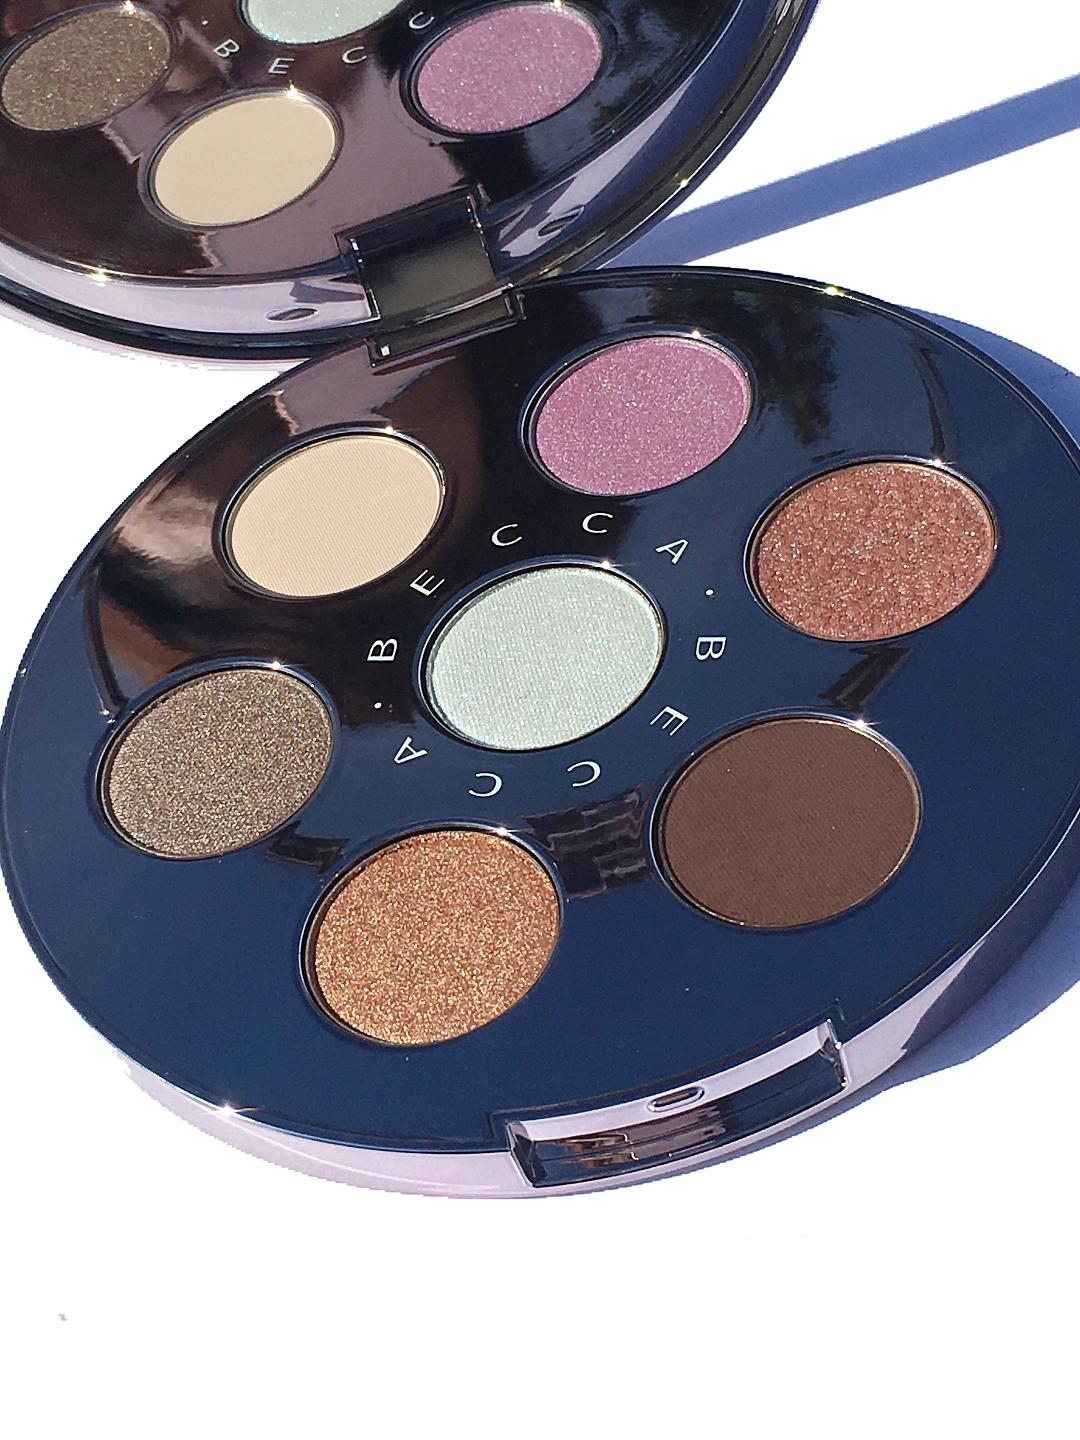 Becca Cosmetics Ocean Jewels Collection Review and Swatches www.calibeaute.com